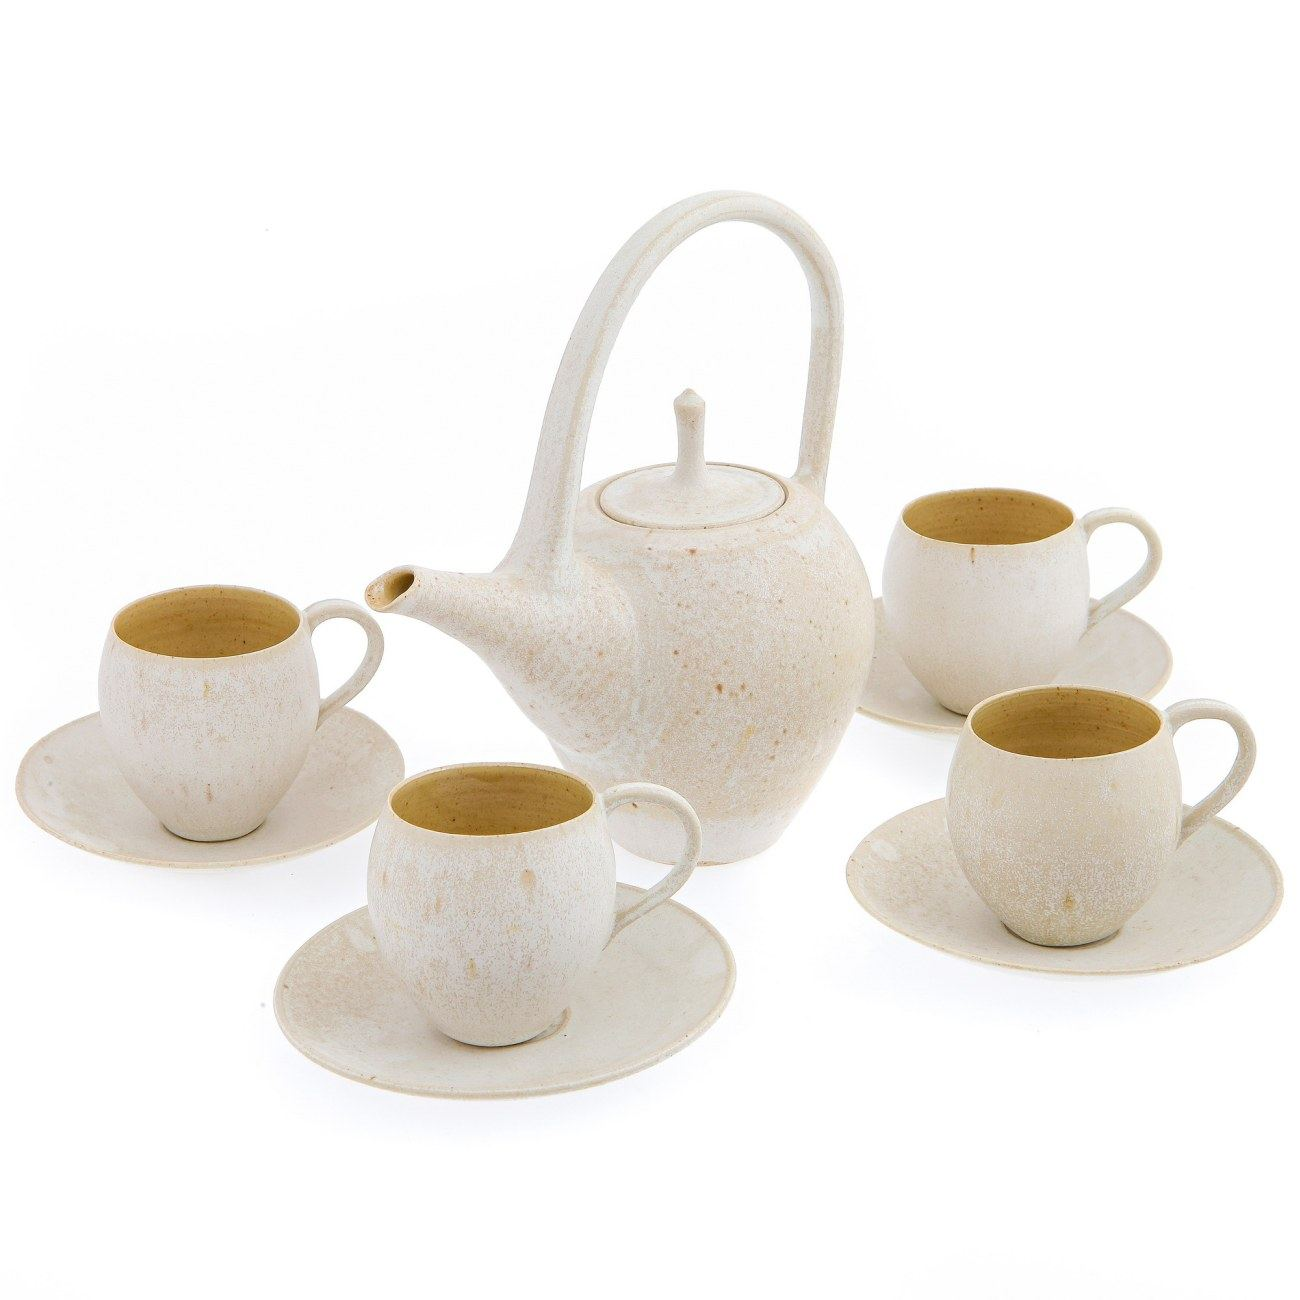 coffee  tea pot   cups with saucers set modern handmade  - teapot  coffee  tea pot   cups with saucers set modern handmadeceramic table serveware beige brown